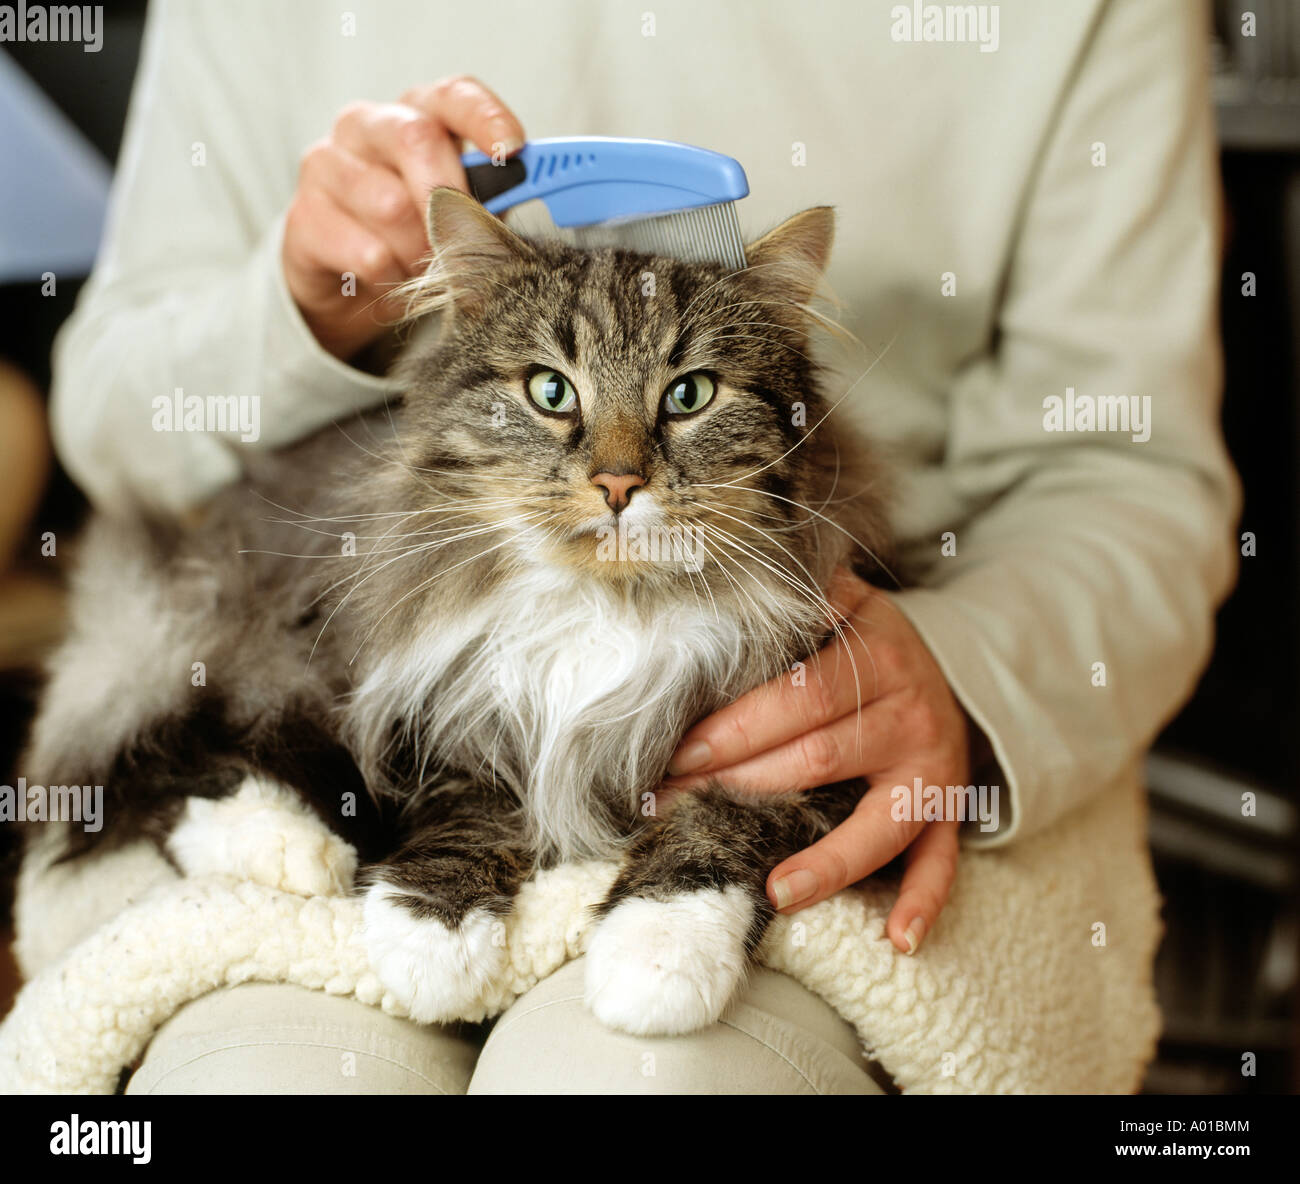 Cat being groomed by its owner - Stock Image